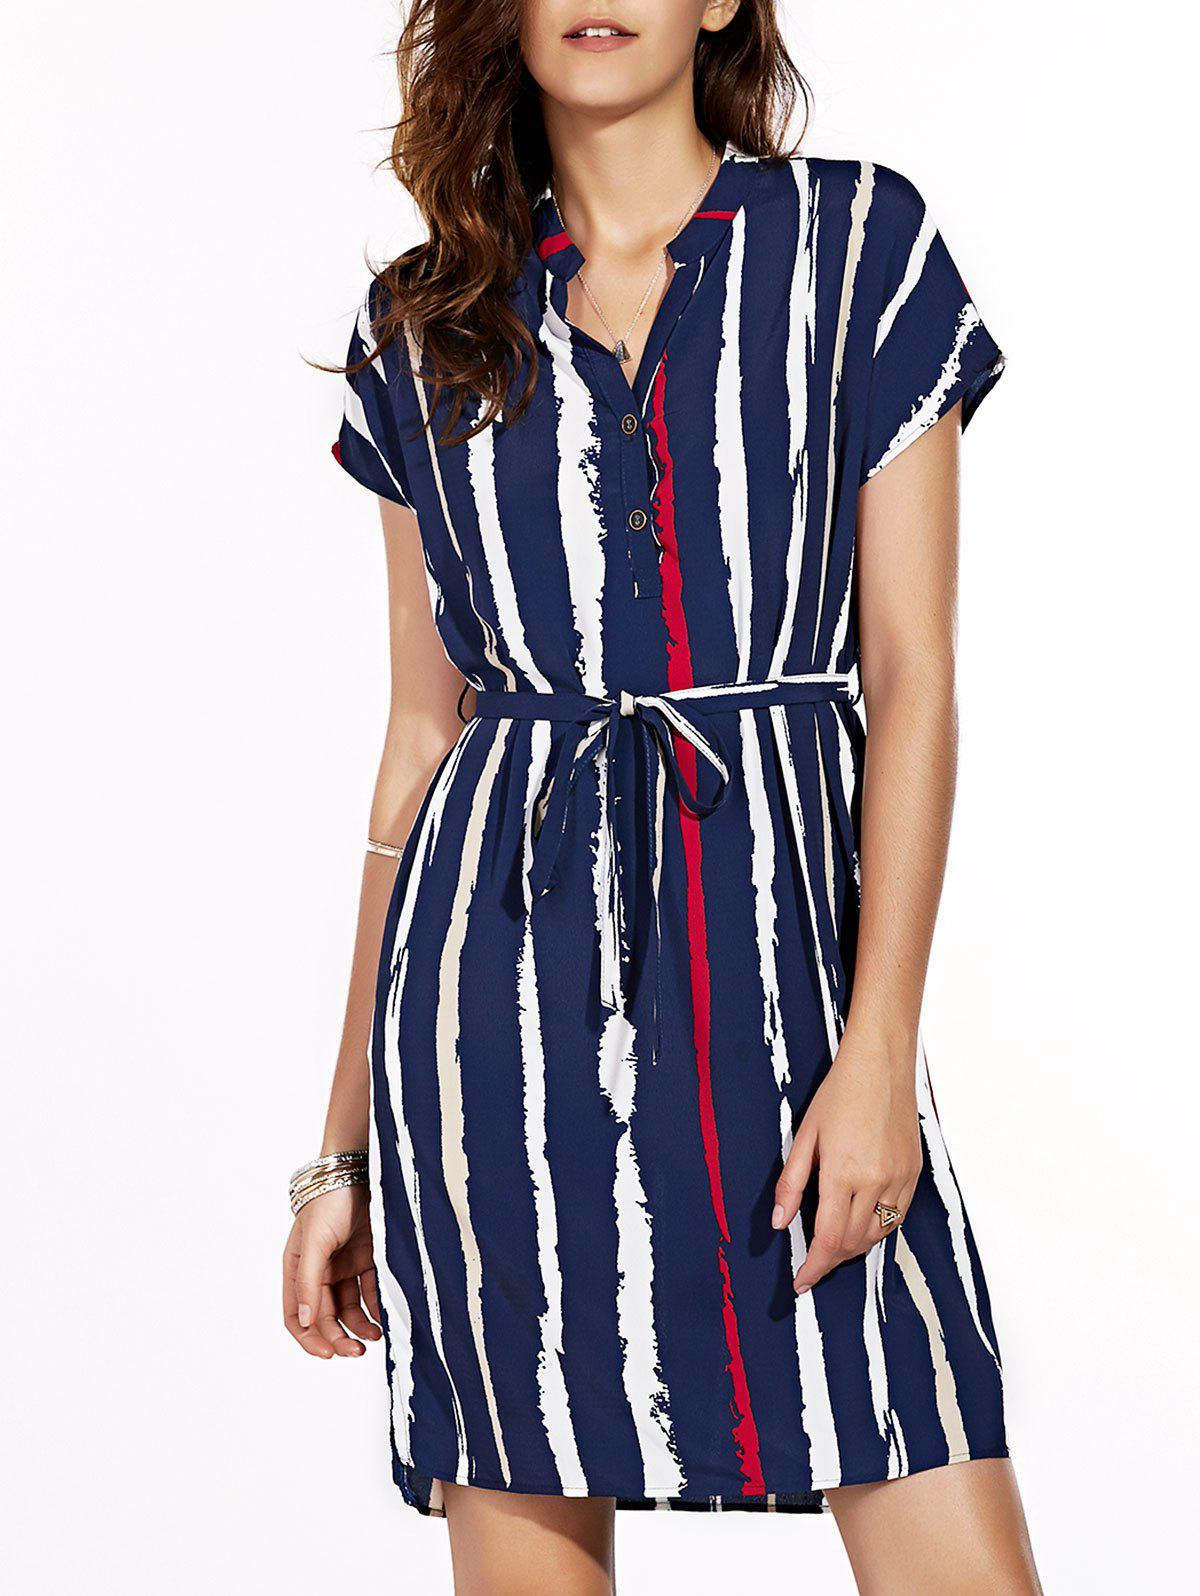 Casual Women's V-Neck Short Sleeves Stripe Dress - BLUE XL